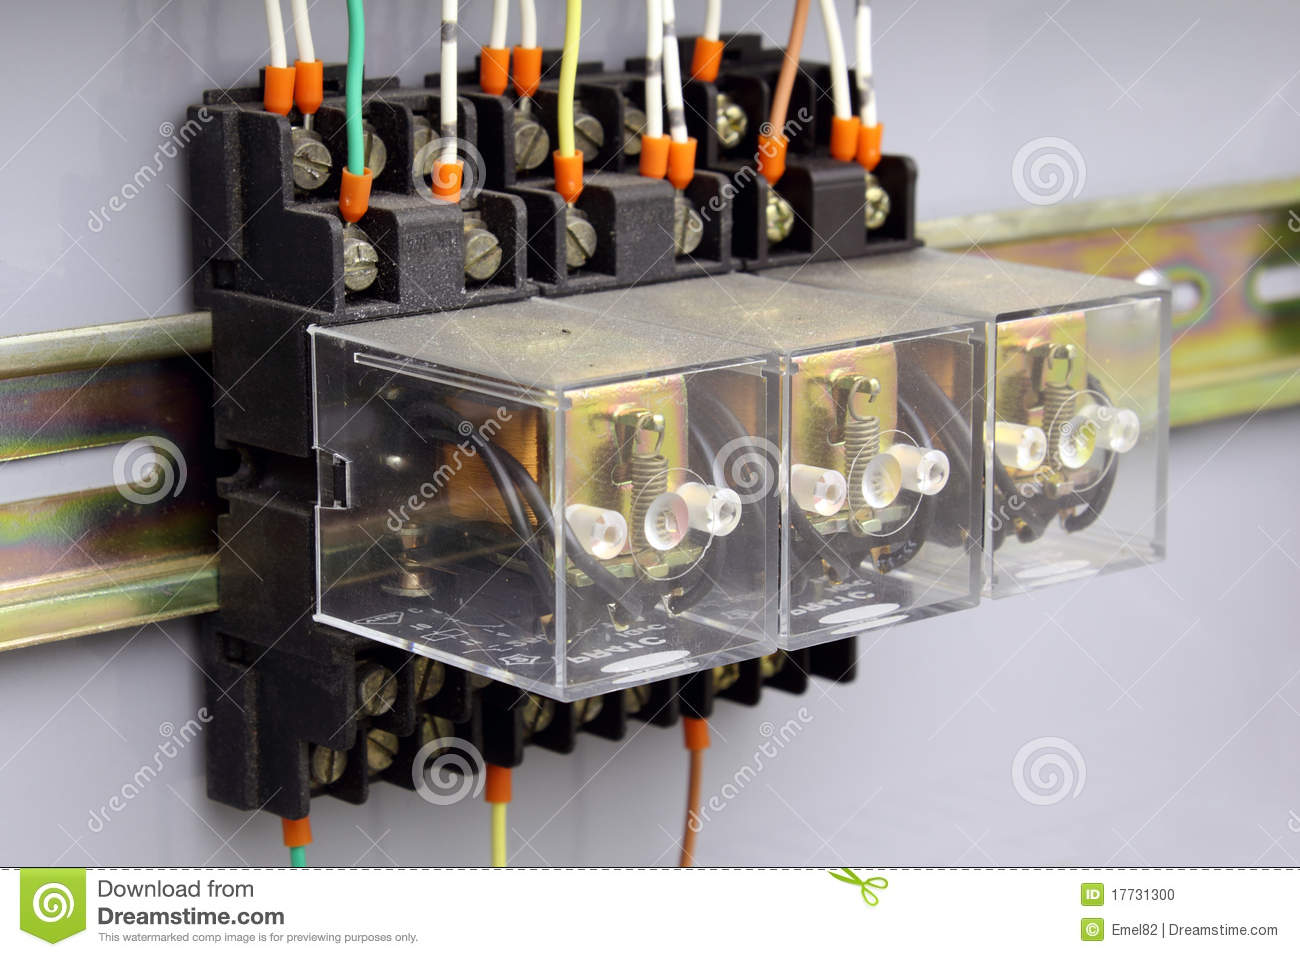 Electrical Relays Stock Photo  Image Of Relays  Electrical